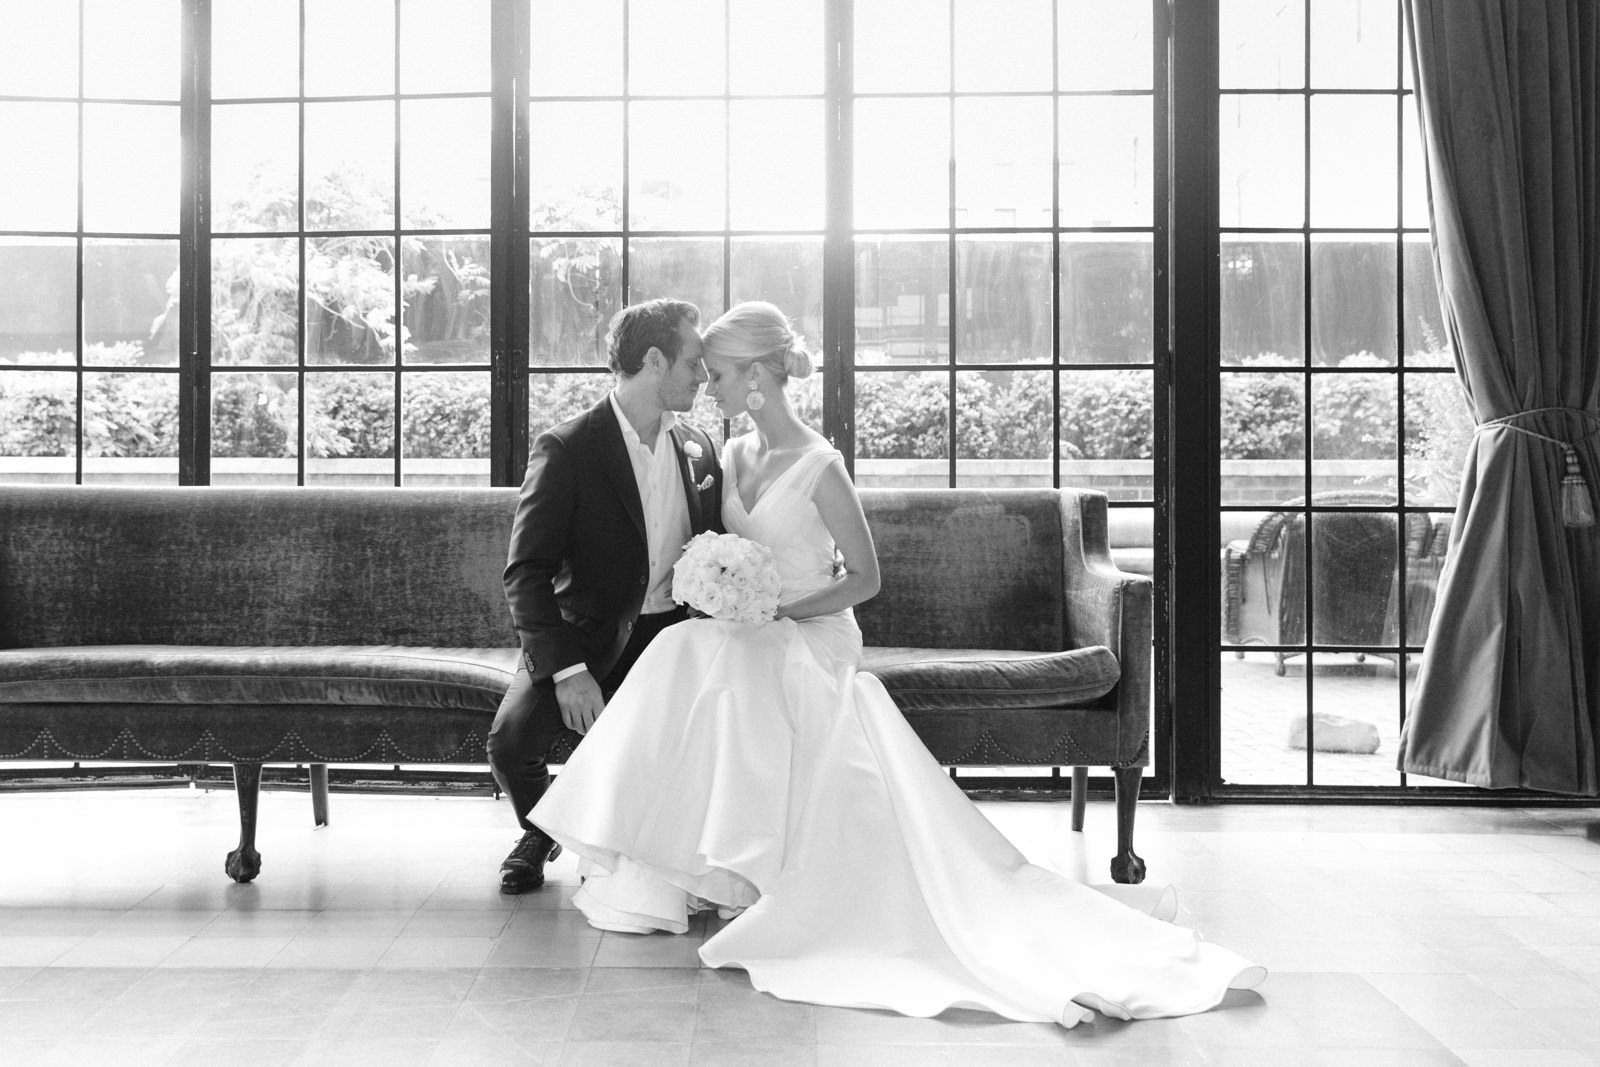 Intimate-NYC_wedding_ by Tanya Isaeva-73.jpg